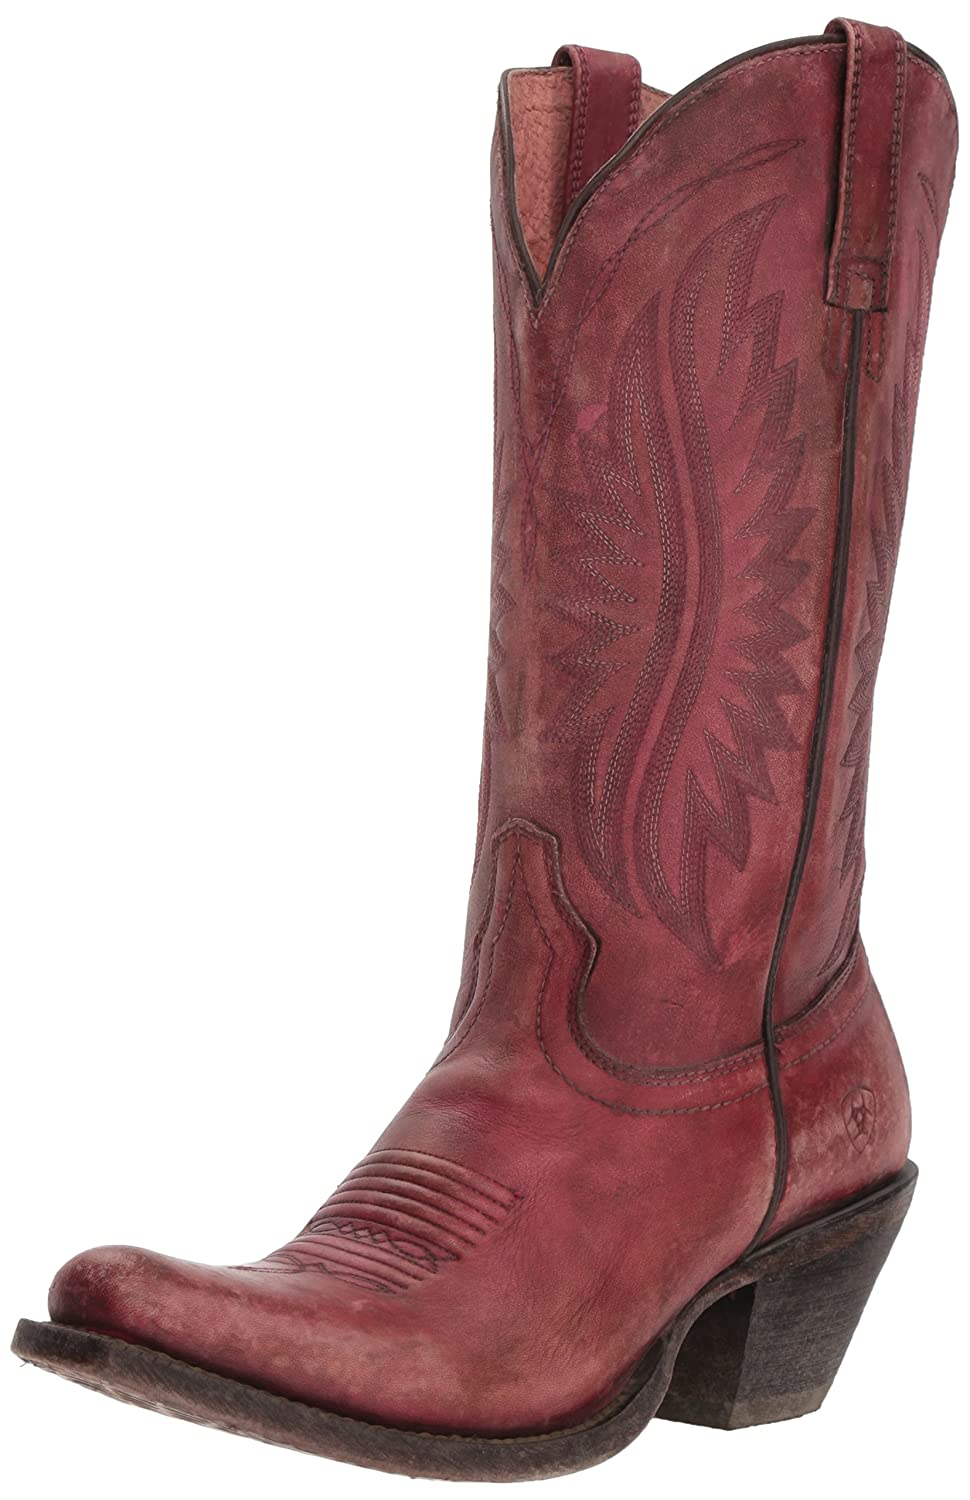 Ariat Women's Circuit Salem Western Boot B076MKD4WS 10 B(M) US|Naturally Distressed Pink